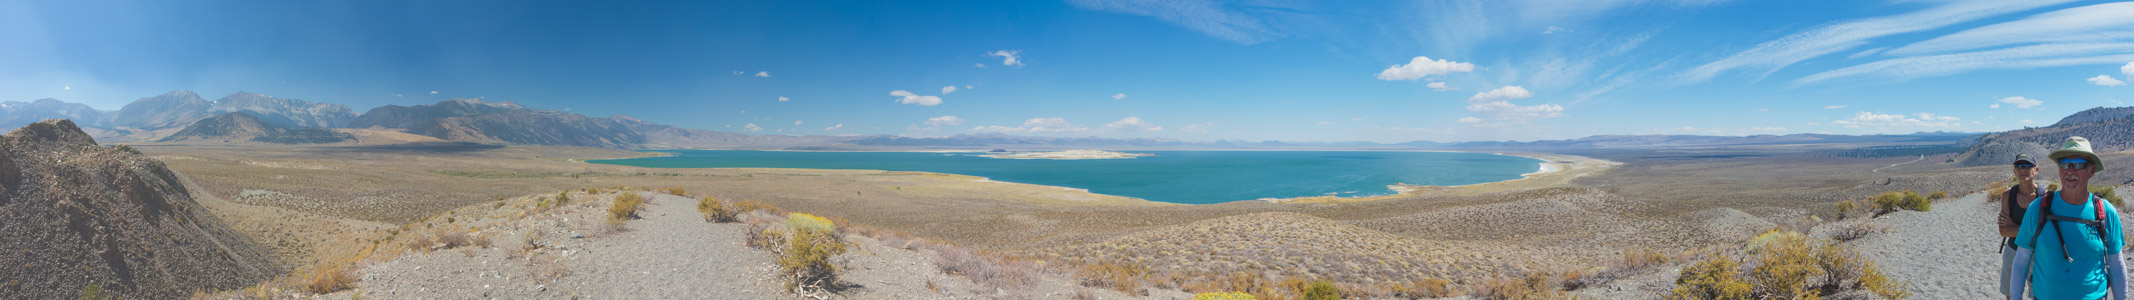 Mono Lake from Panum Crater 1 - 9/2016